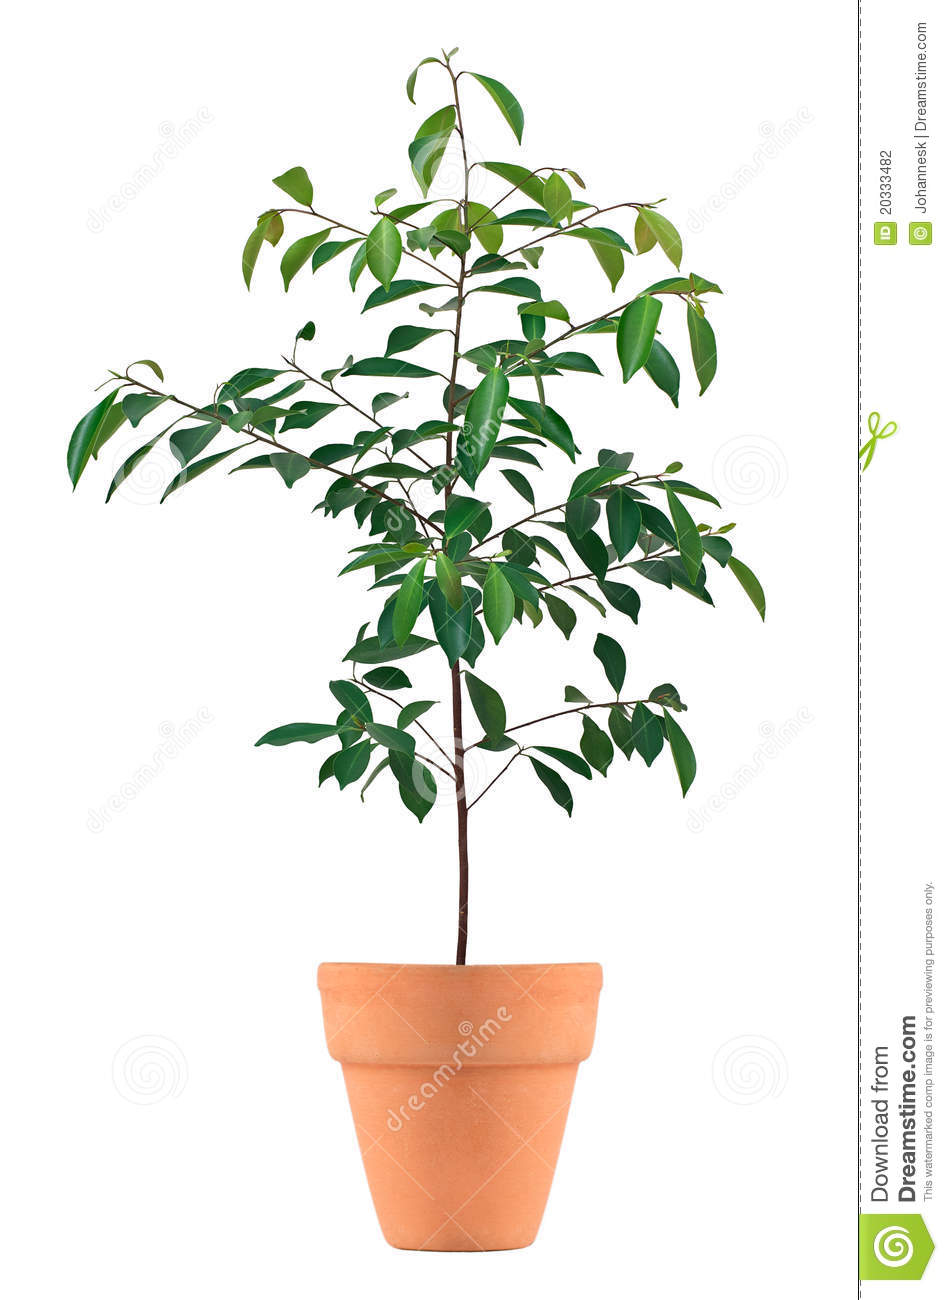 Small tree in a pot stock photo image of small tree for Short trees